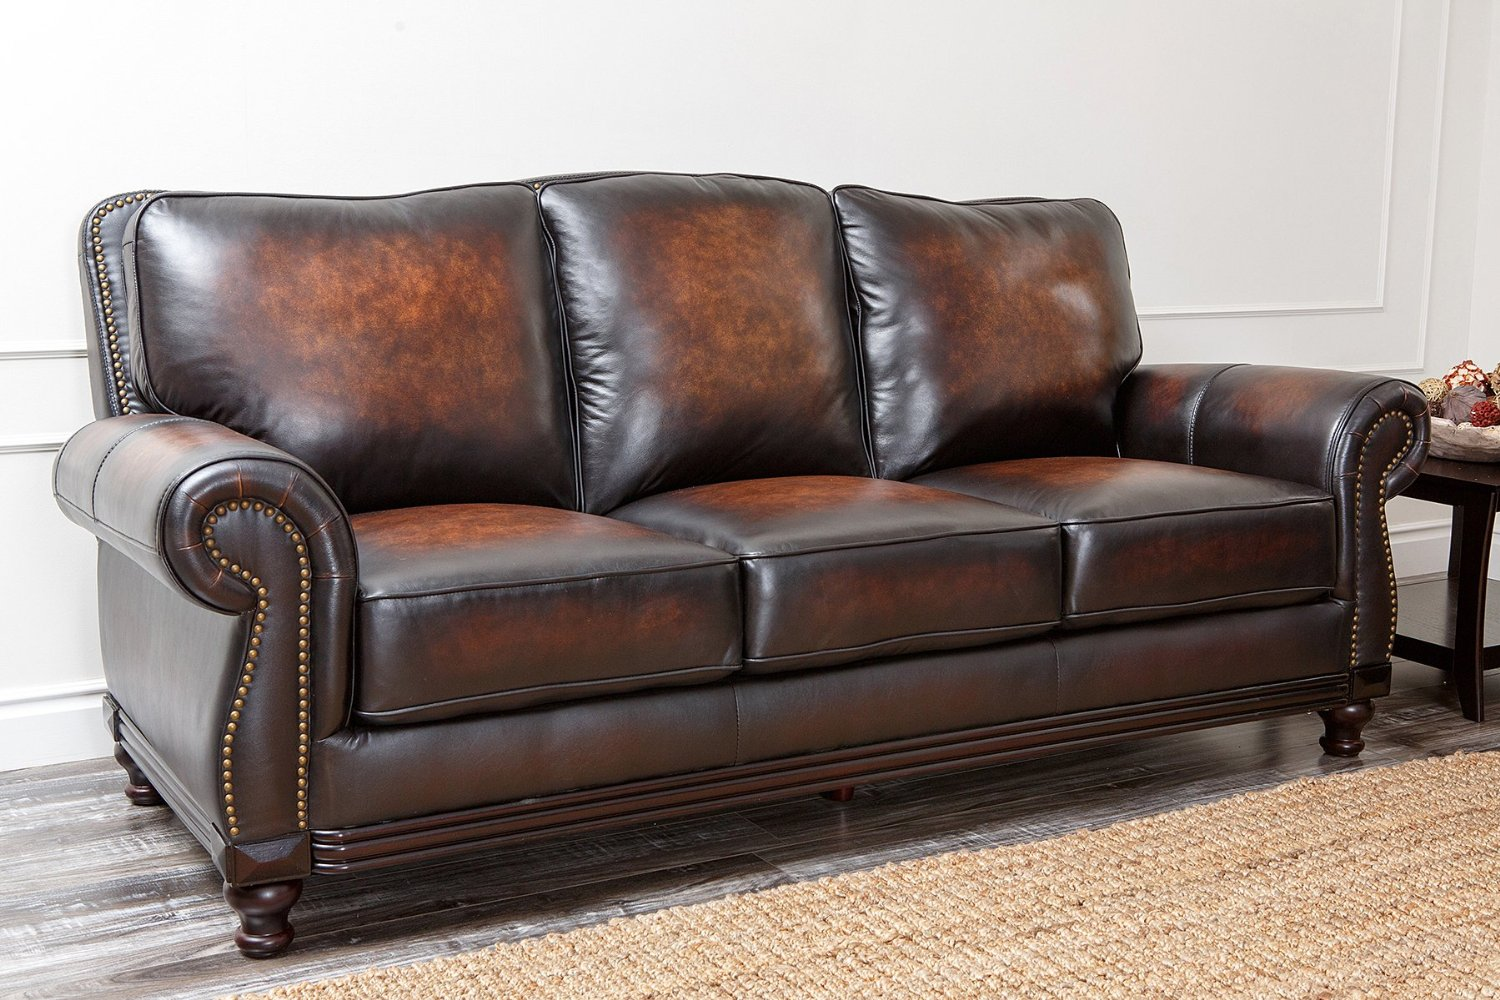 Review Of The Best Leather Sofas That You Can Get Off Amazon Leather Sofa Guide